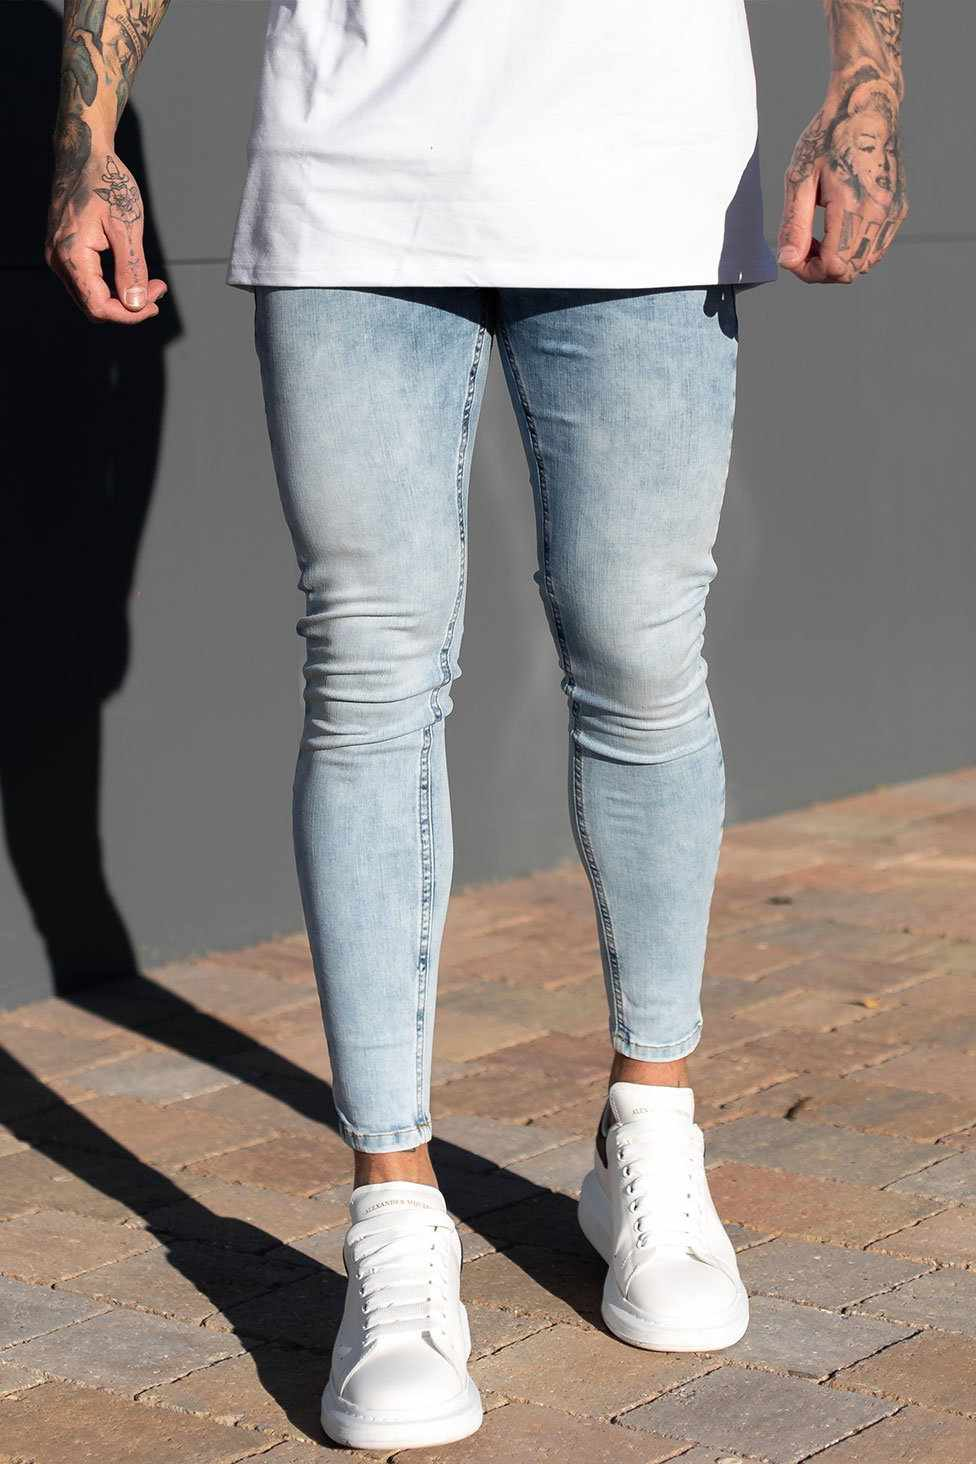 Sinners Attire Super Spray On Jeans - Light Blue